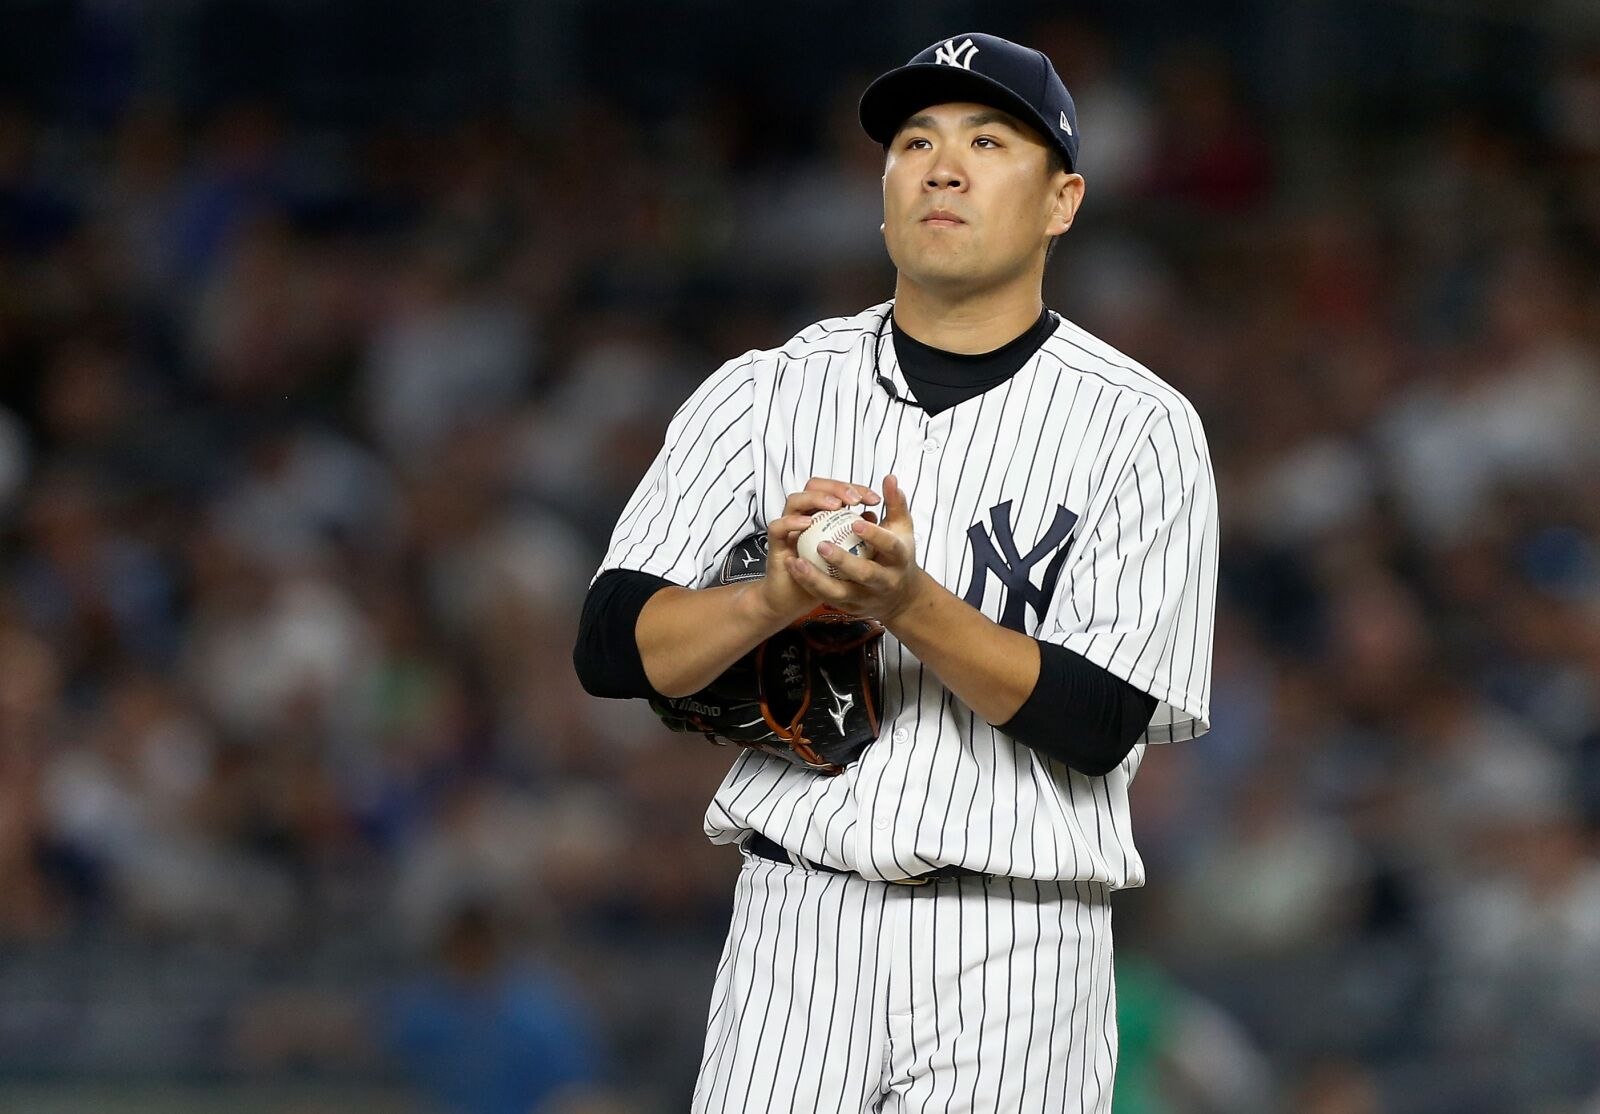 Masahiro Tanaka's October success is underrated